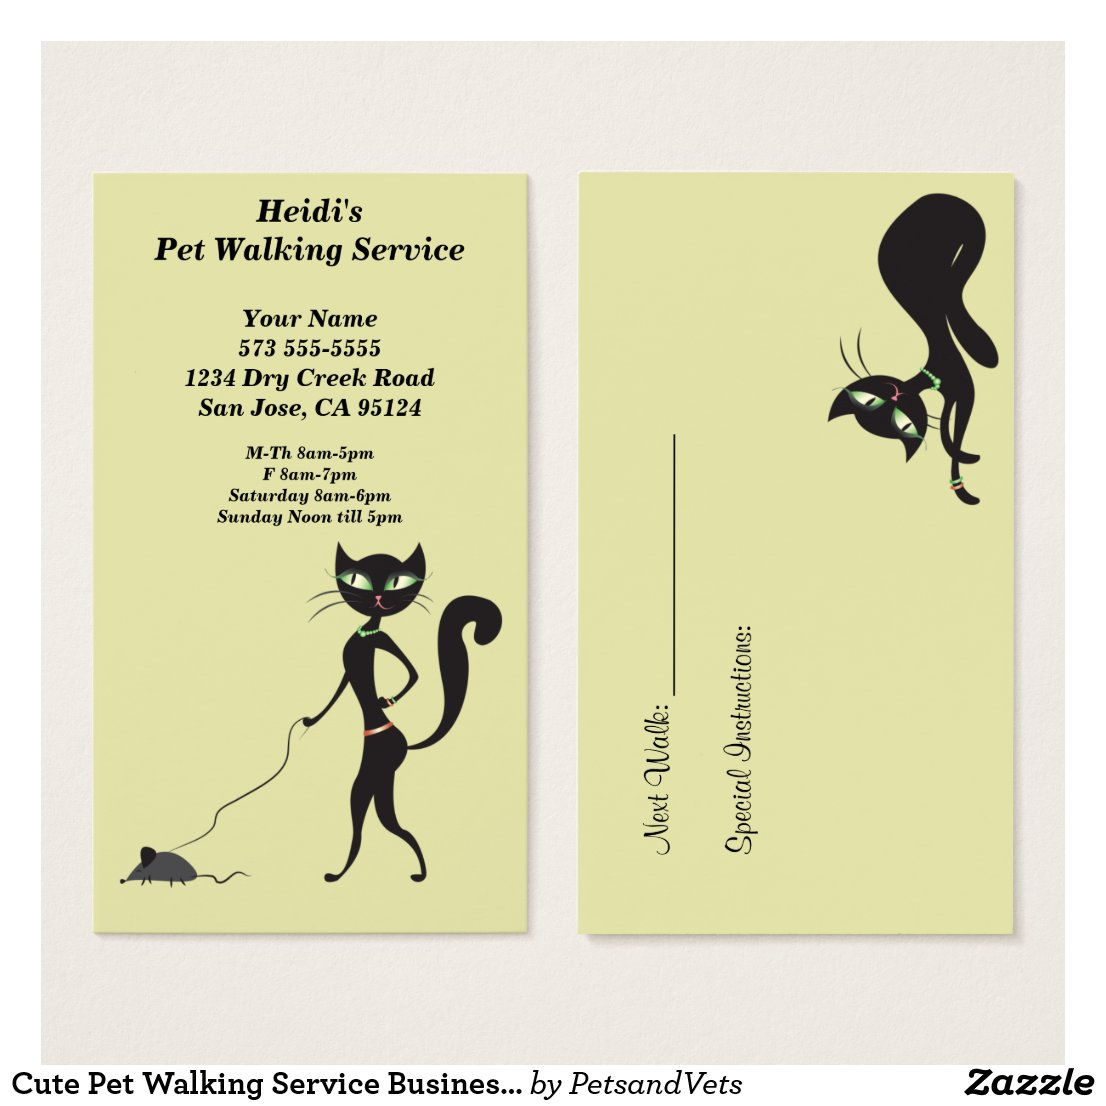 Cute Pet Walking Service Business Card